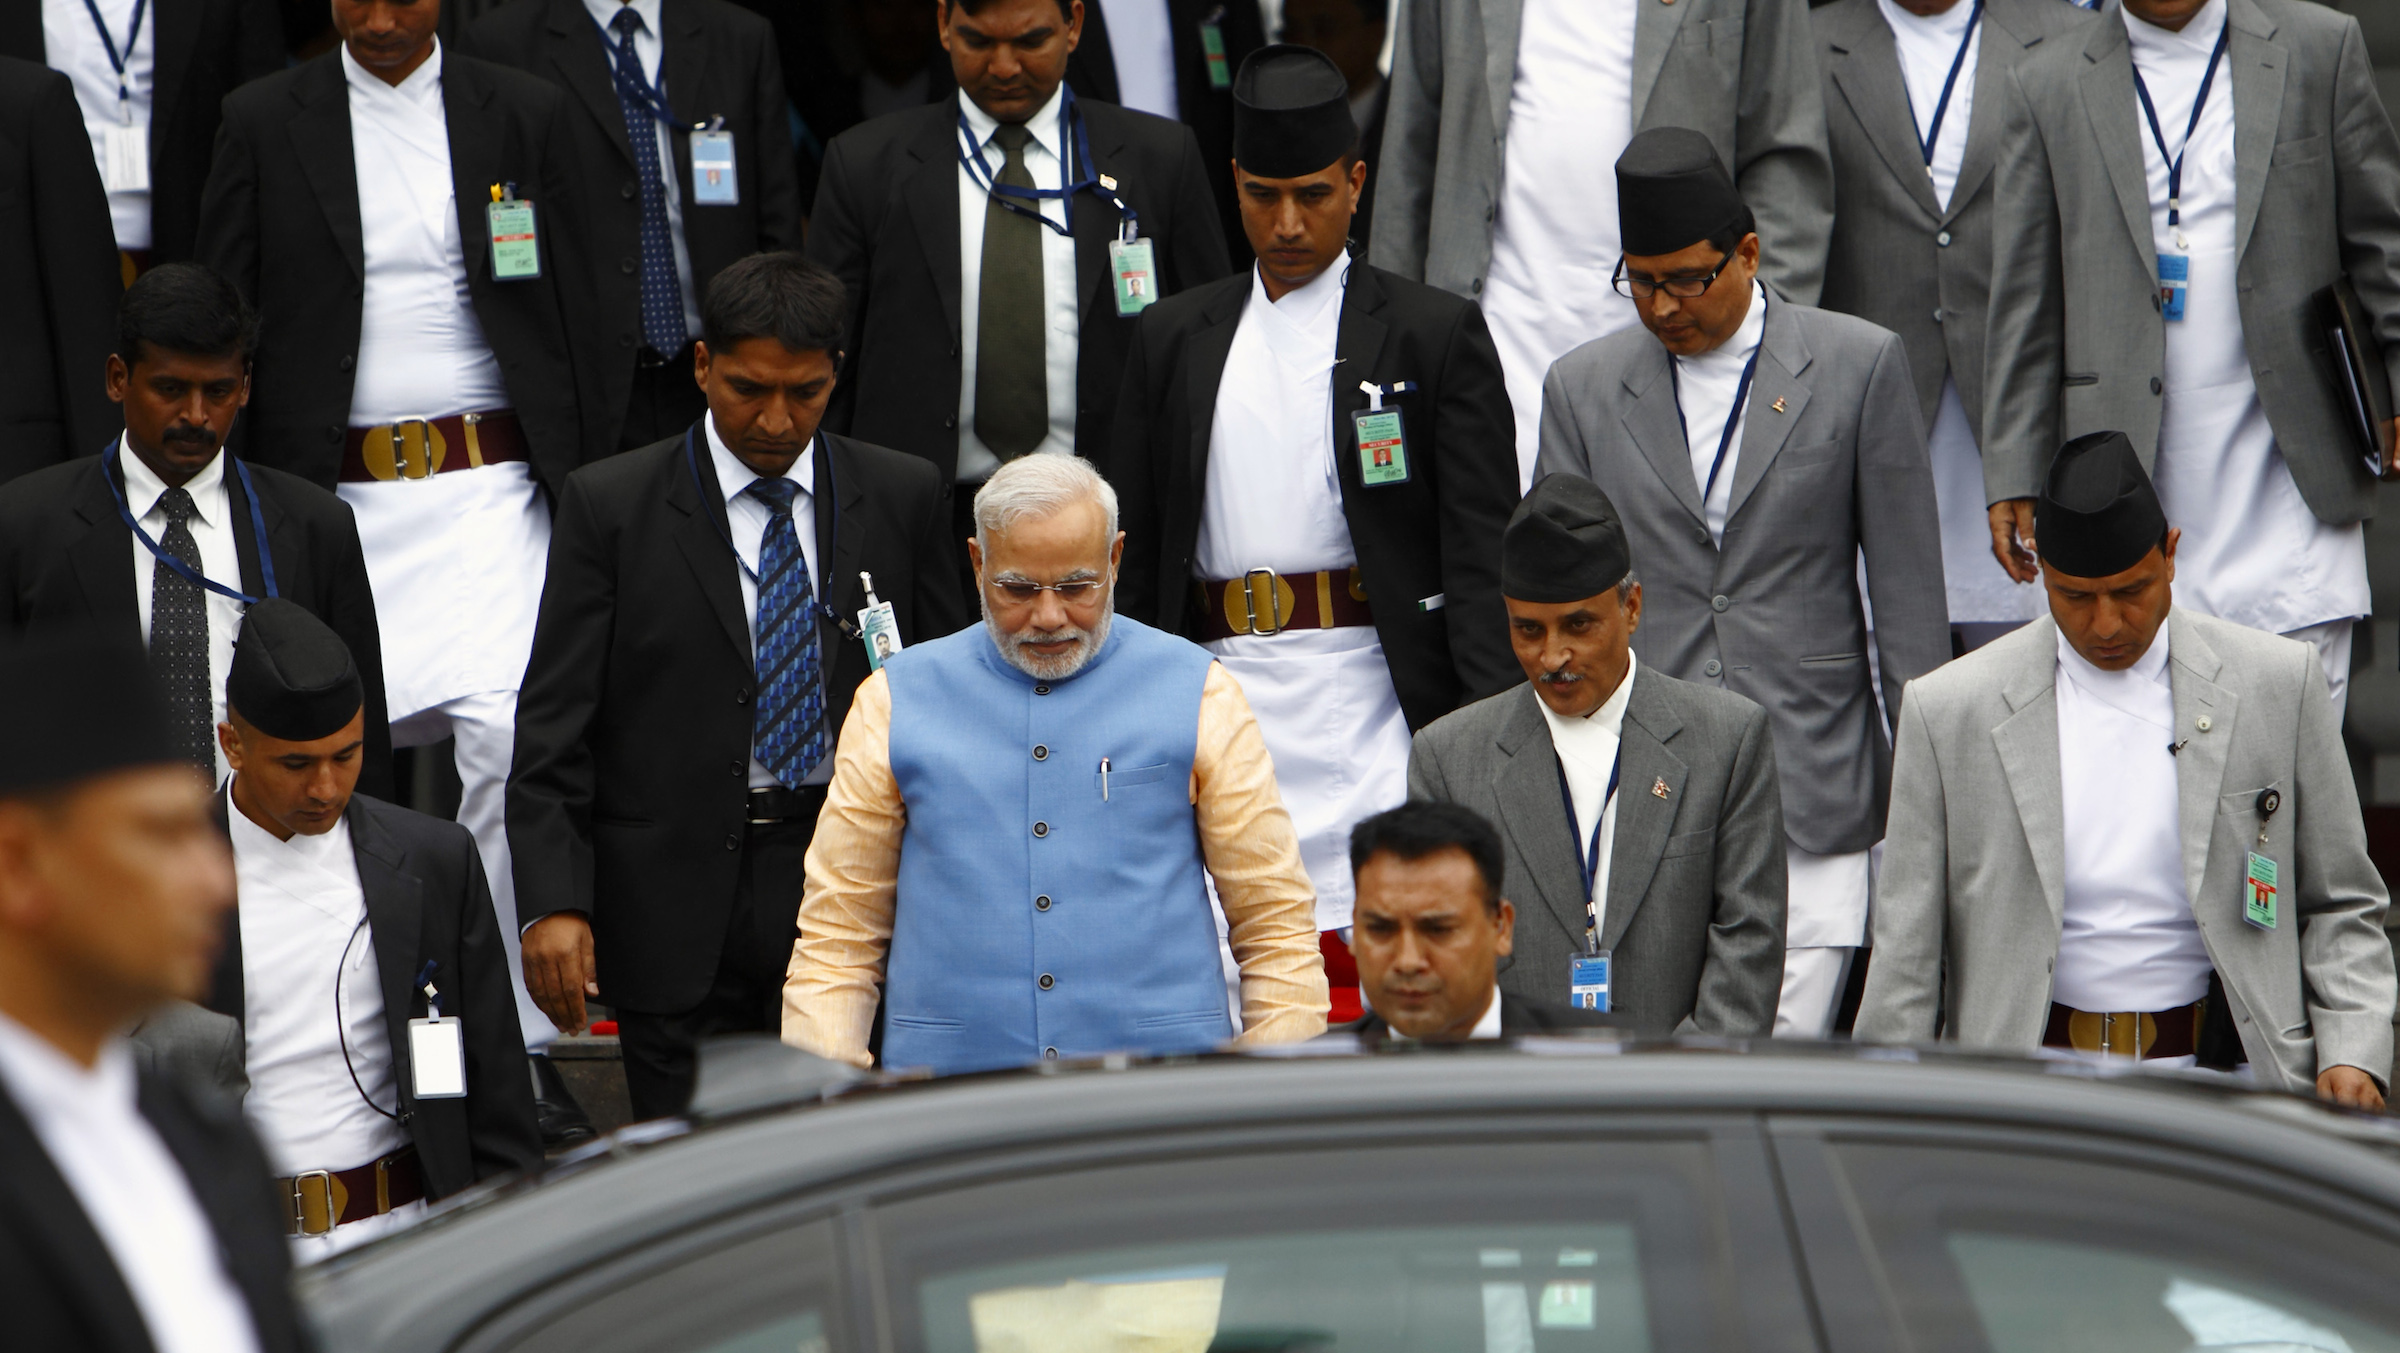 India's Prime Minister Narendra Modi (in blue) leaves after meeting with Nepal's Prime Minister Sushil Koirala.